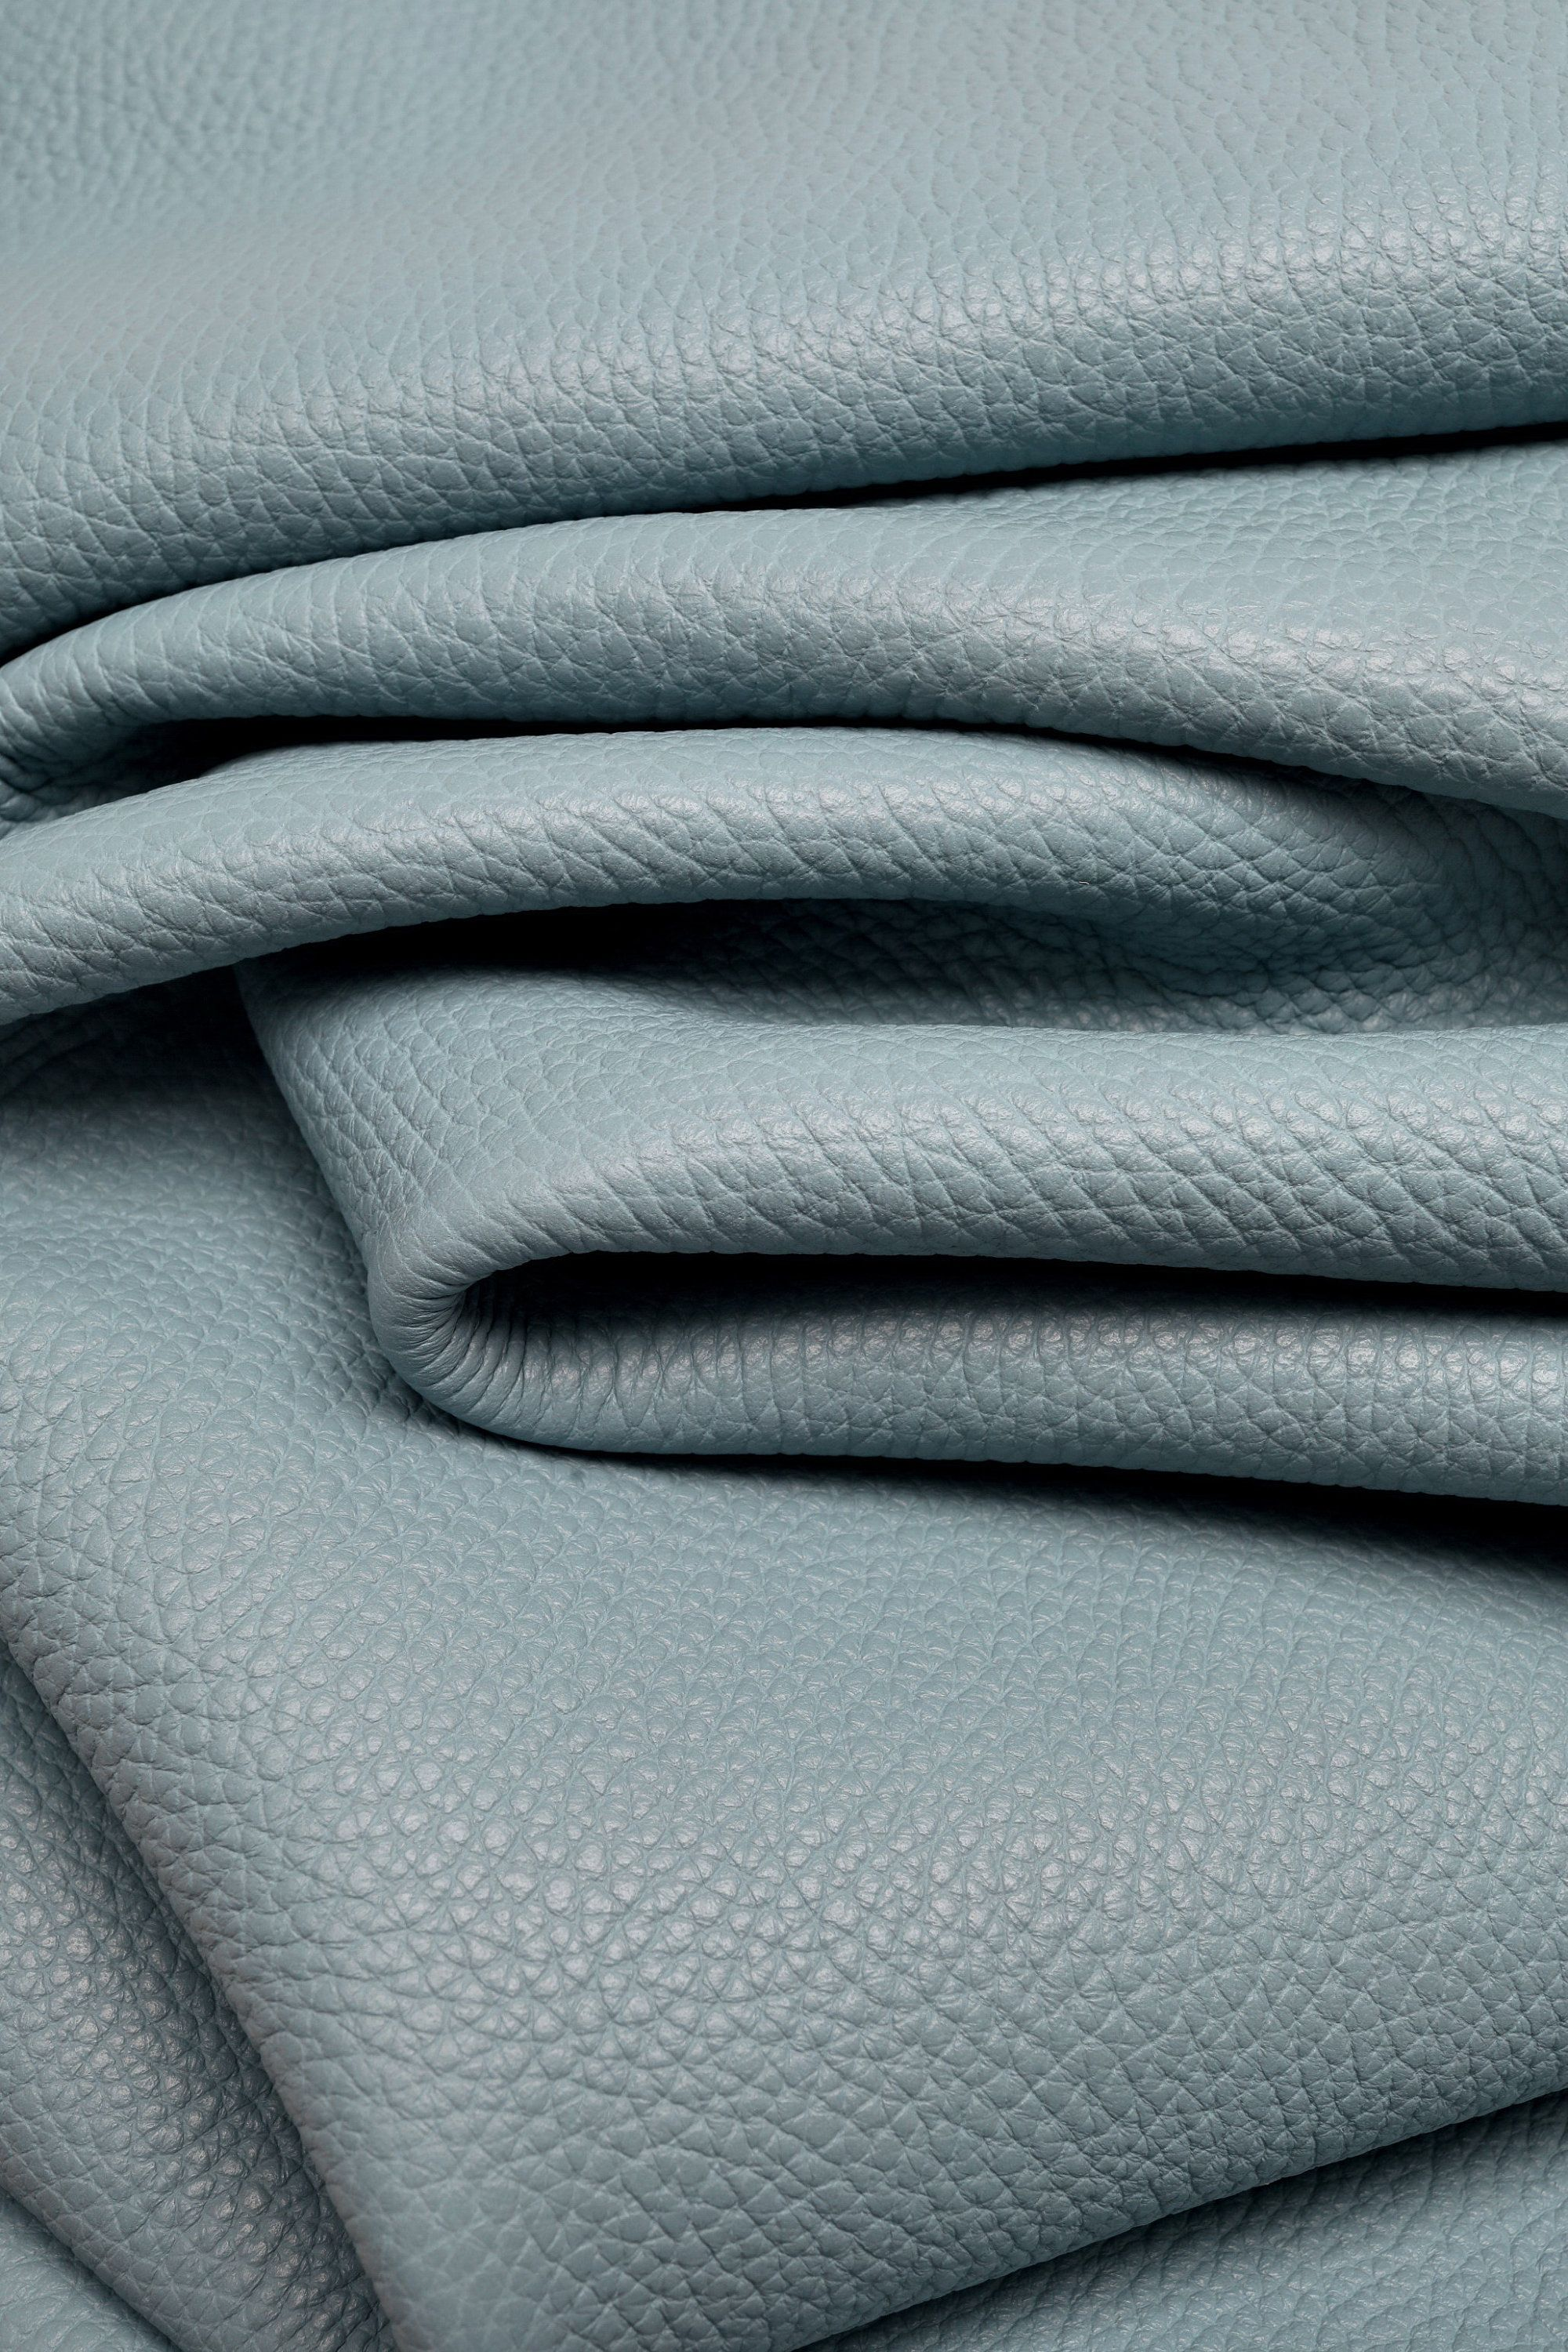 soft skin   A5284-MT  La Garzarara laminated base with removable white wax on the top hides available in two colors Italian leather